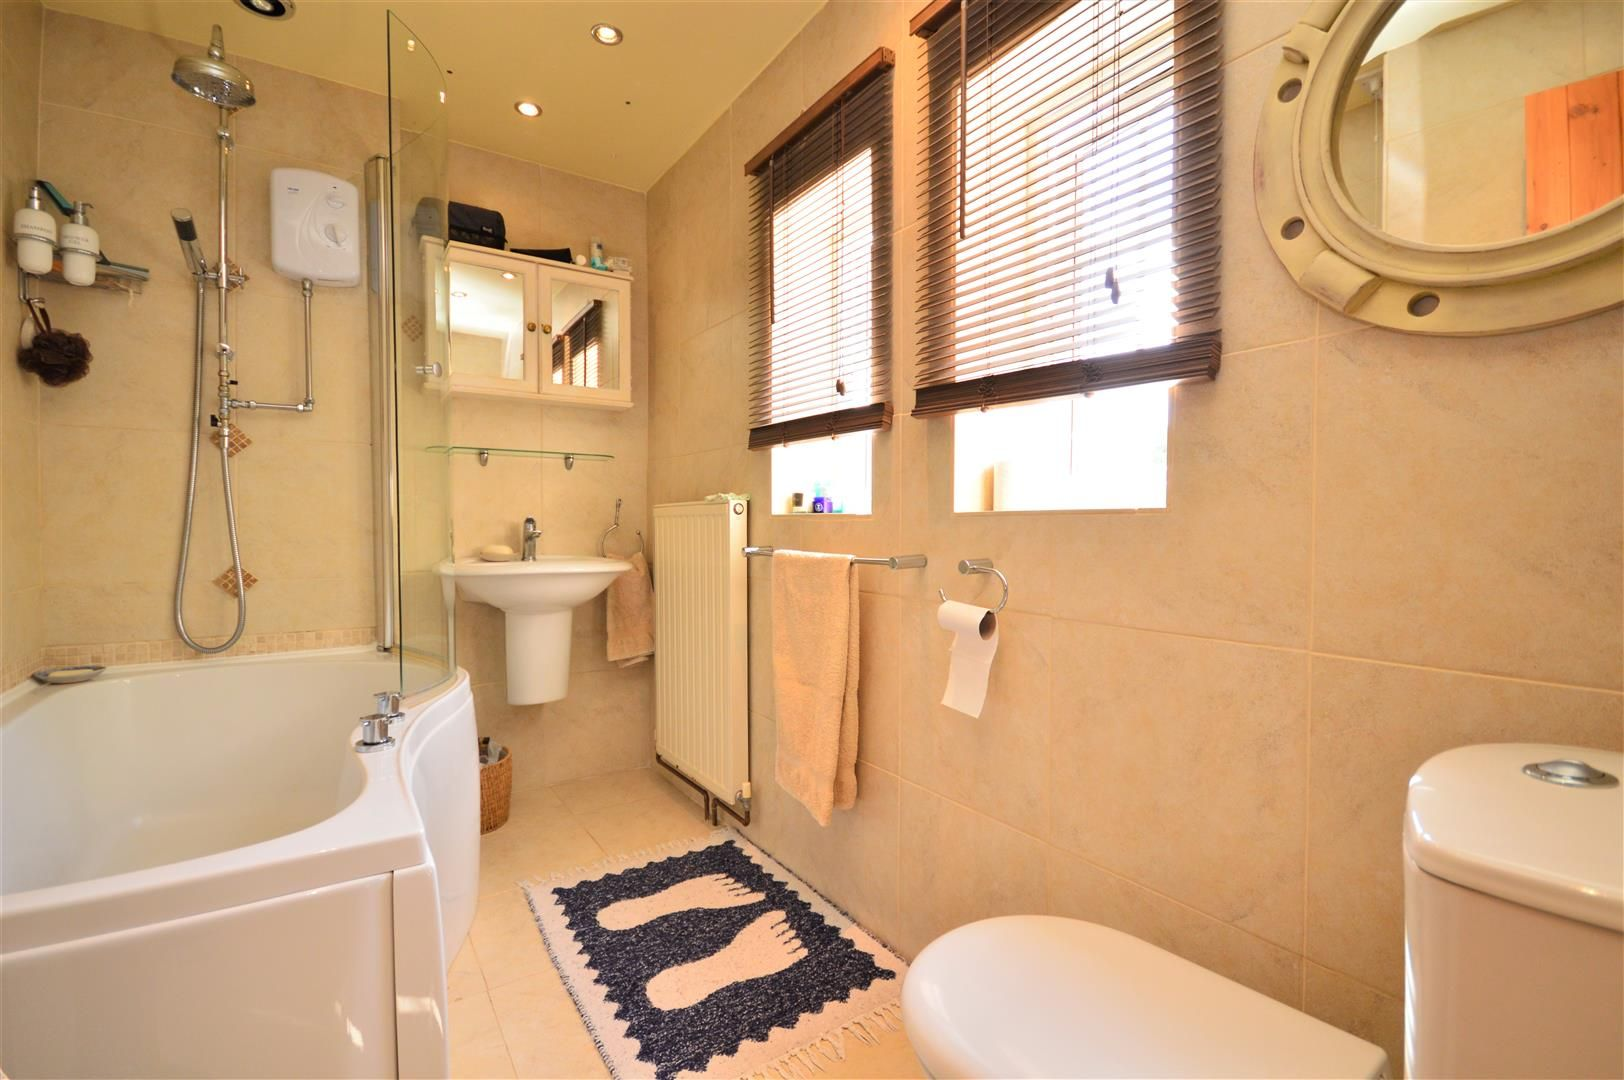 3 bed semi-detached for sale in Stretton Sugwas  - Property Image 14